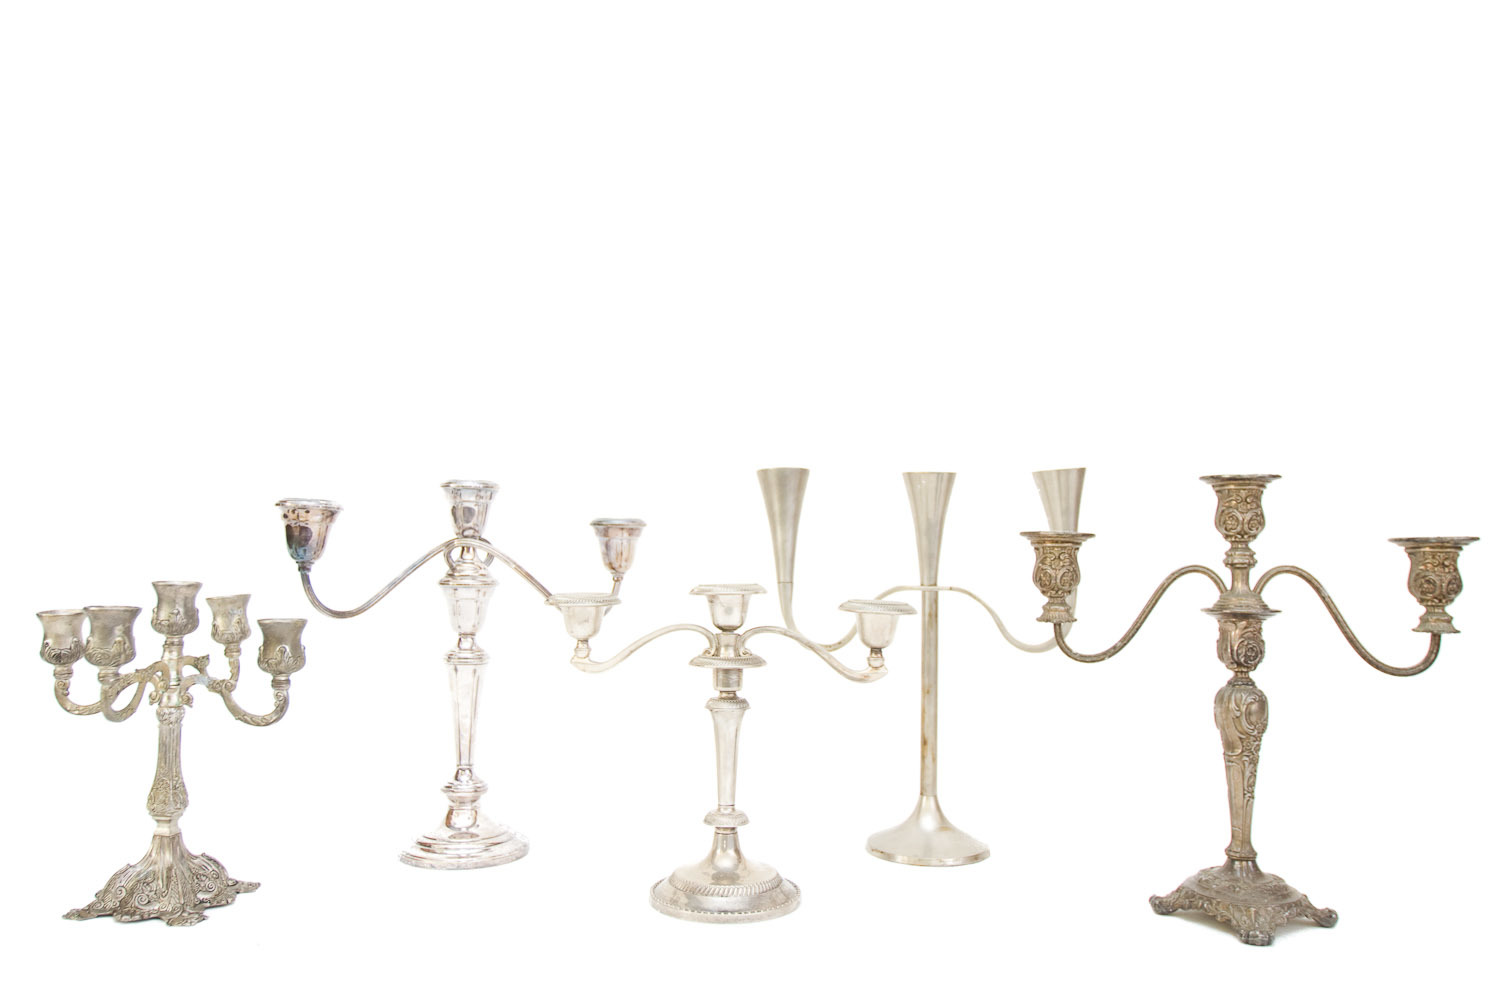 (TA-079.1) SILVER + PEWTER CANDELABRA COLLECTION